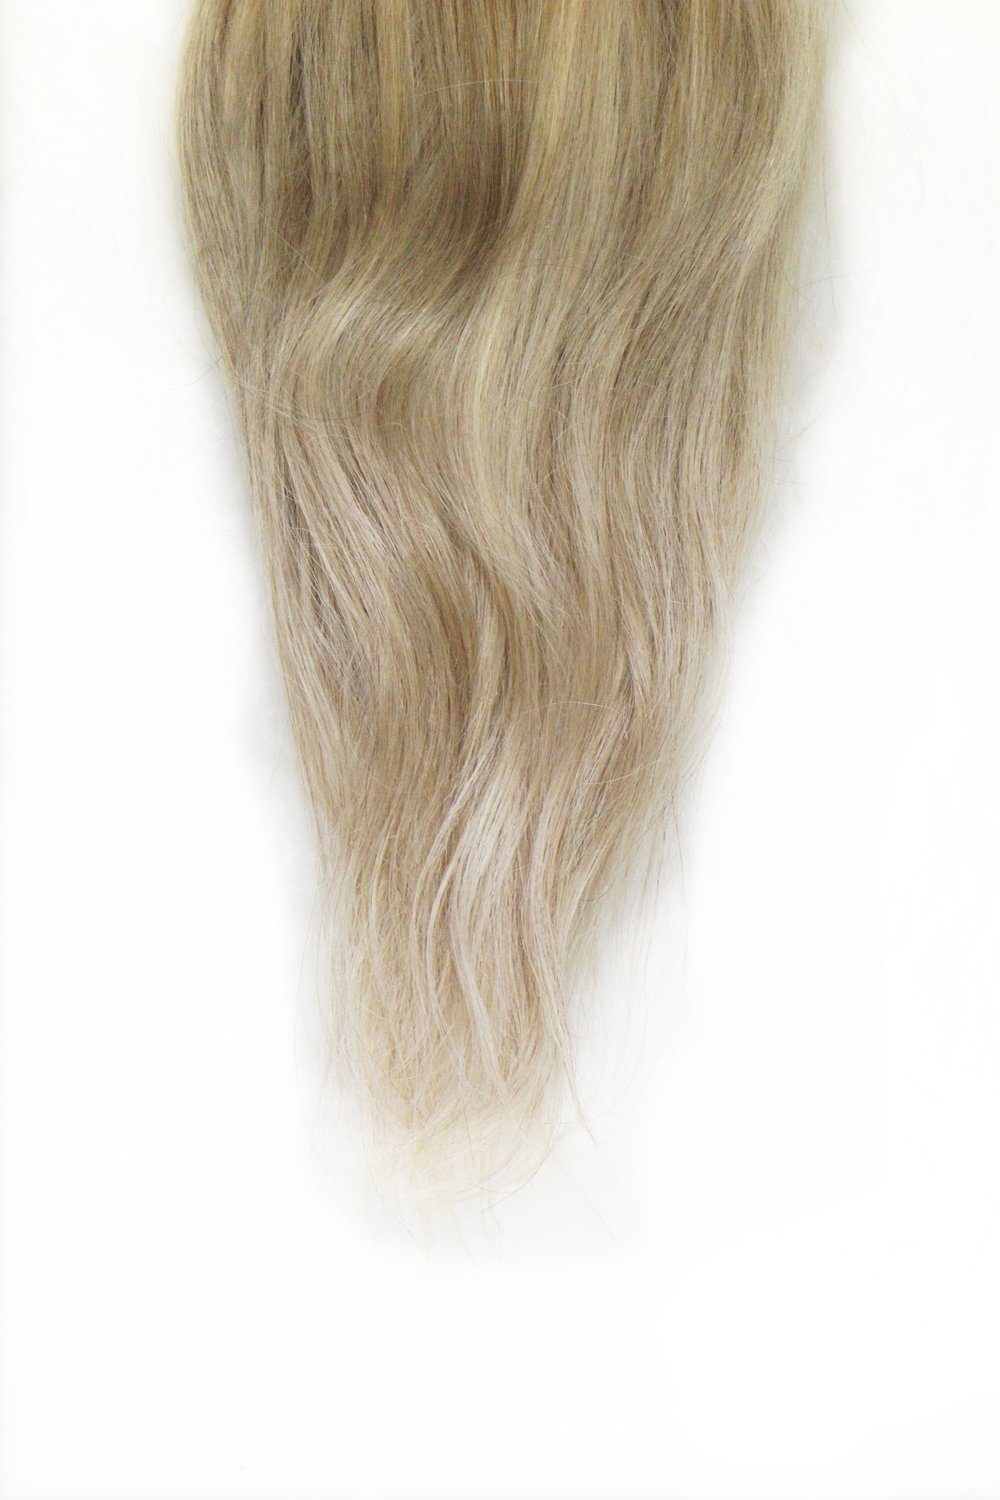 MY HAIR BEFORE - You know when you have them moments where you're like